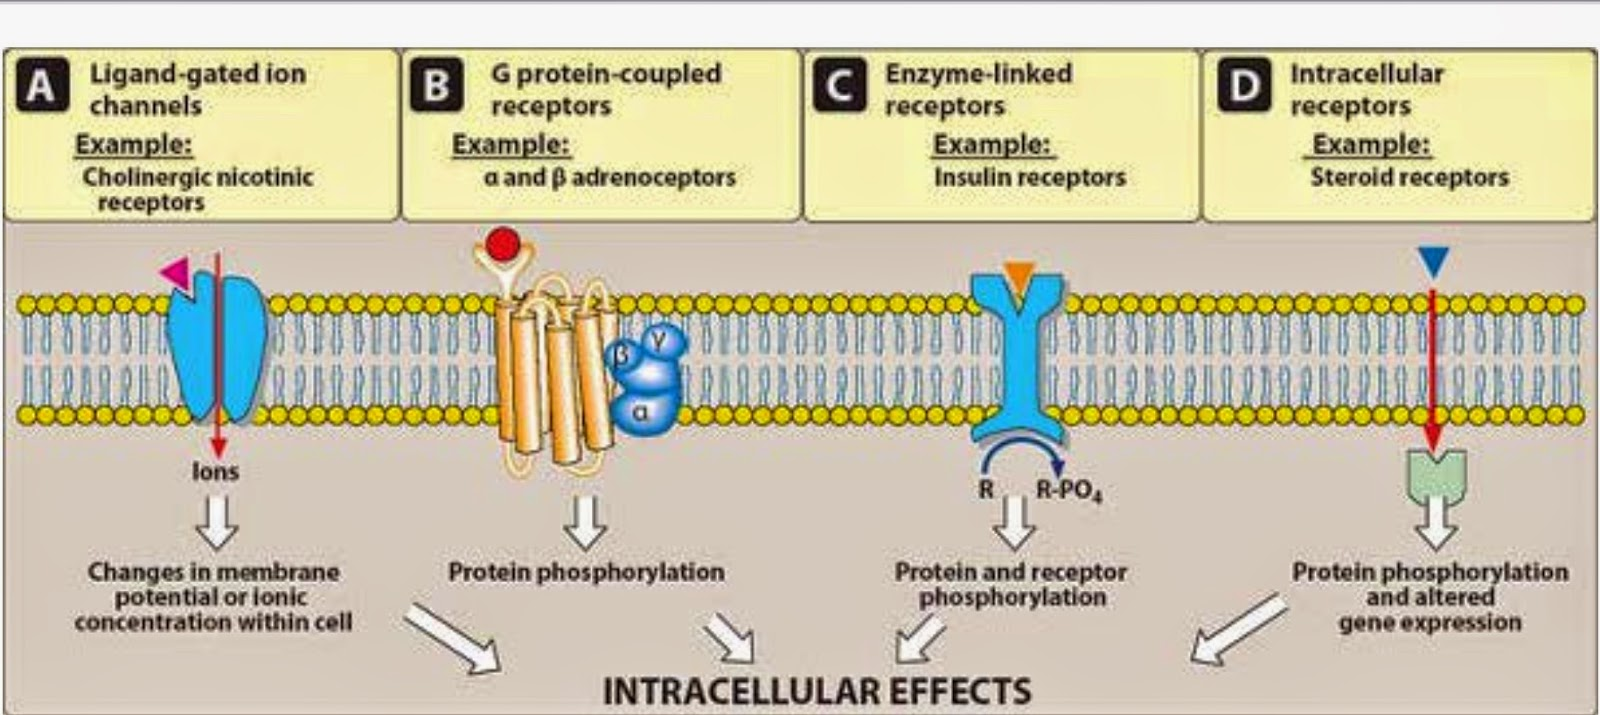 pharmacodynamics drug receptors Pharmacokinetics and pharmacodynamics - the basics  2  (eg hormones, neurotransmitters or drugs) via receptors •receptors are proteins on/in a cell wall.